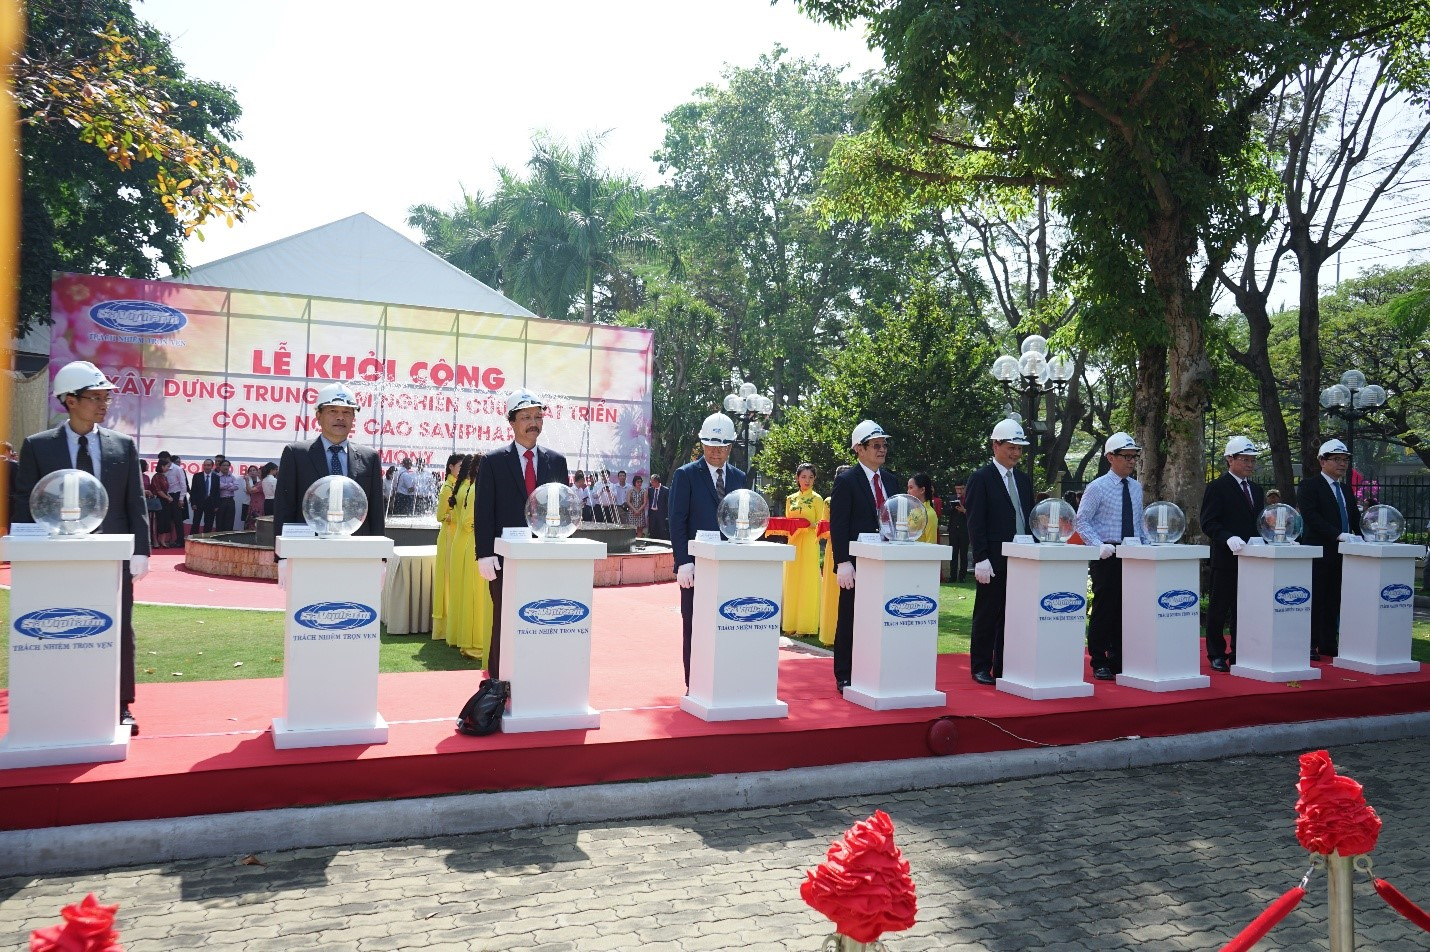 Officials and SaVipharm leaders take part inn a groundbreaking ritual for the firm's new high-tech research and development center in Ho Chi Minh City on January 7, 2020. Photo: SaVipharm